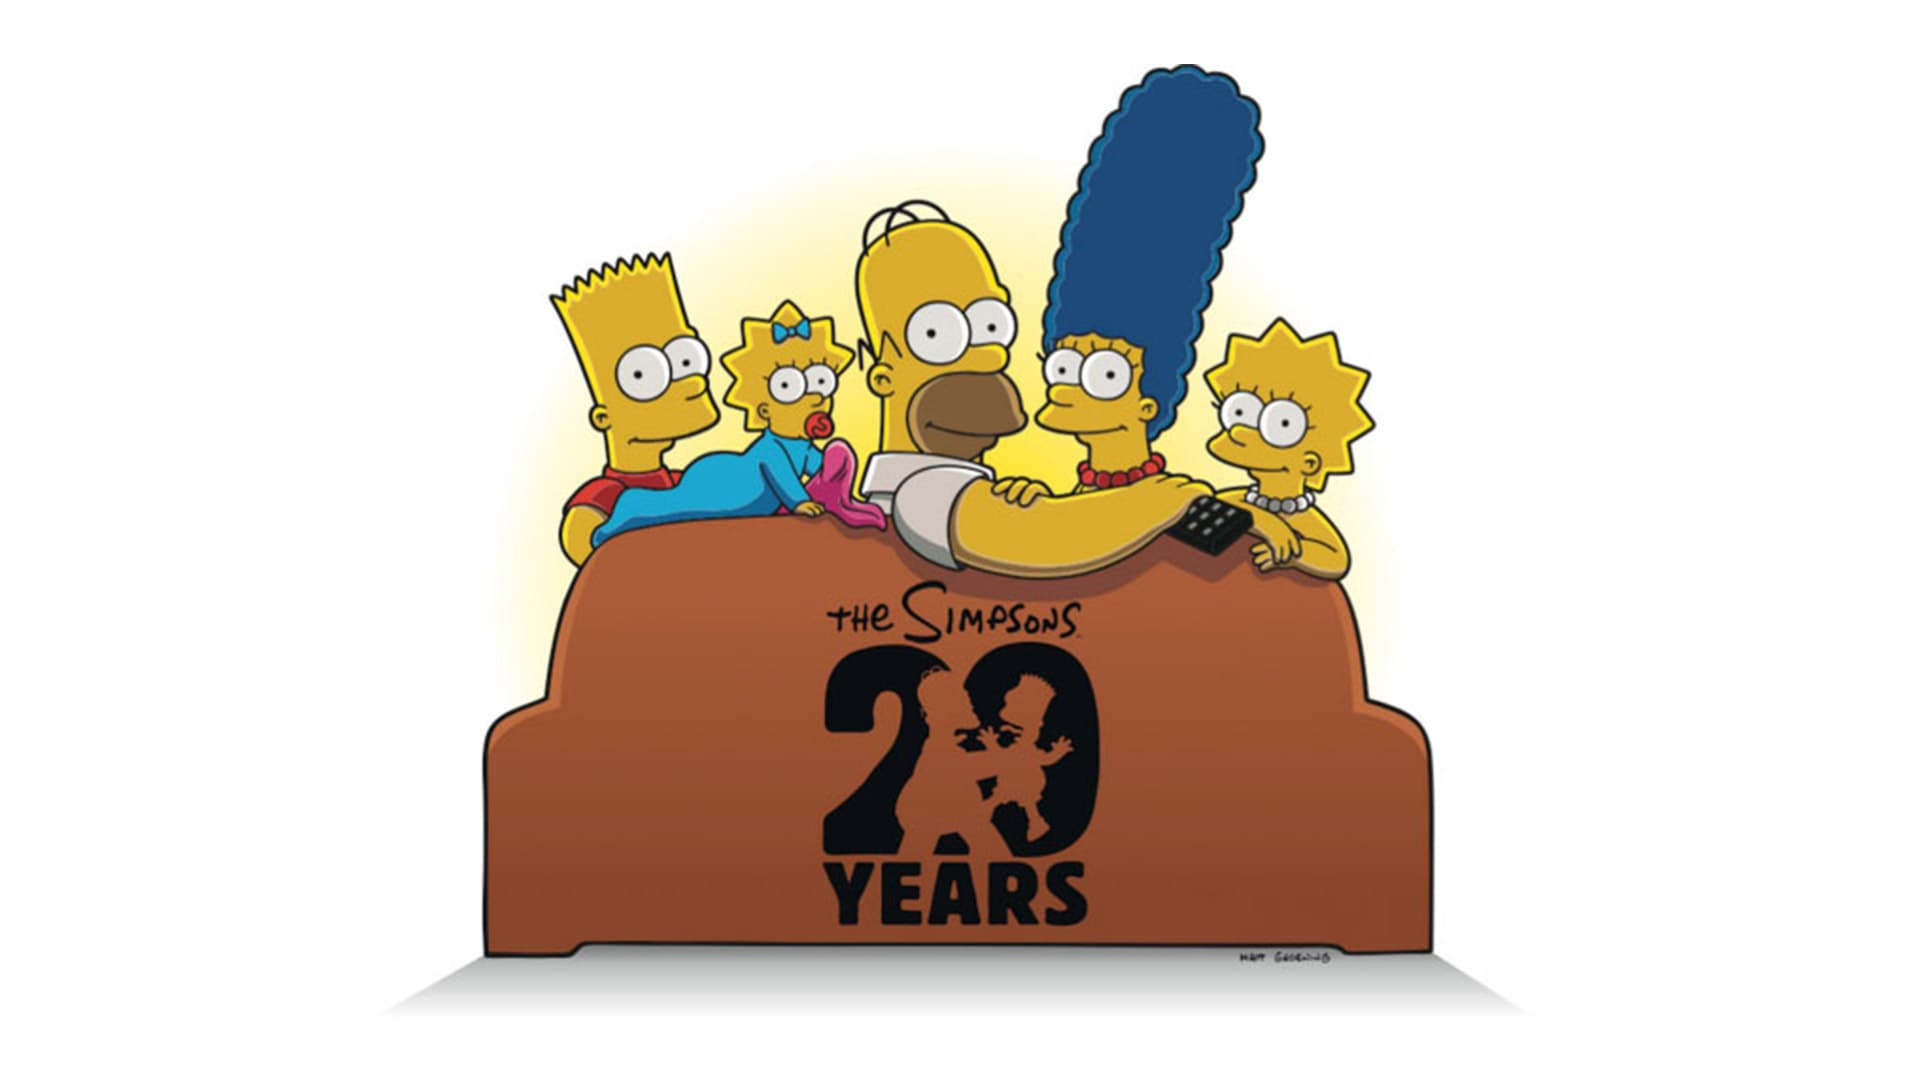 Regarder The Simpsons 20th Anniversary Special – In 3D! On Ice! en streaming gratuit